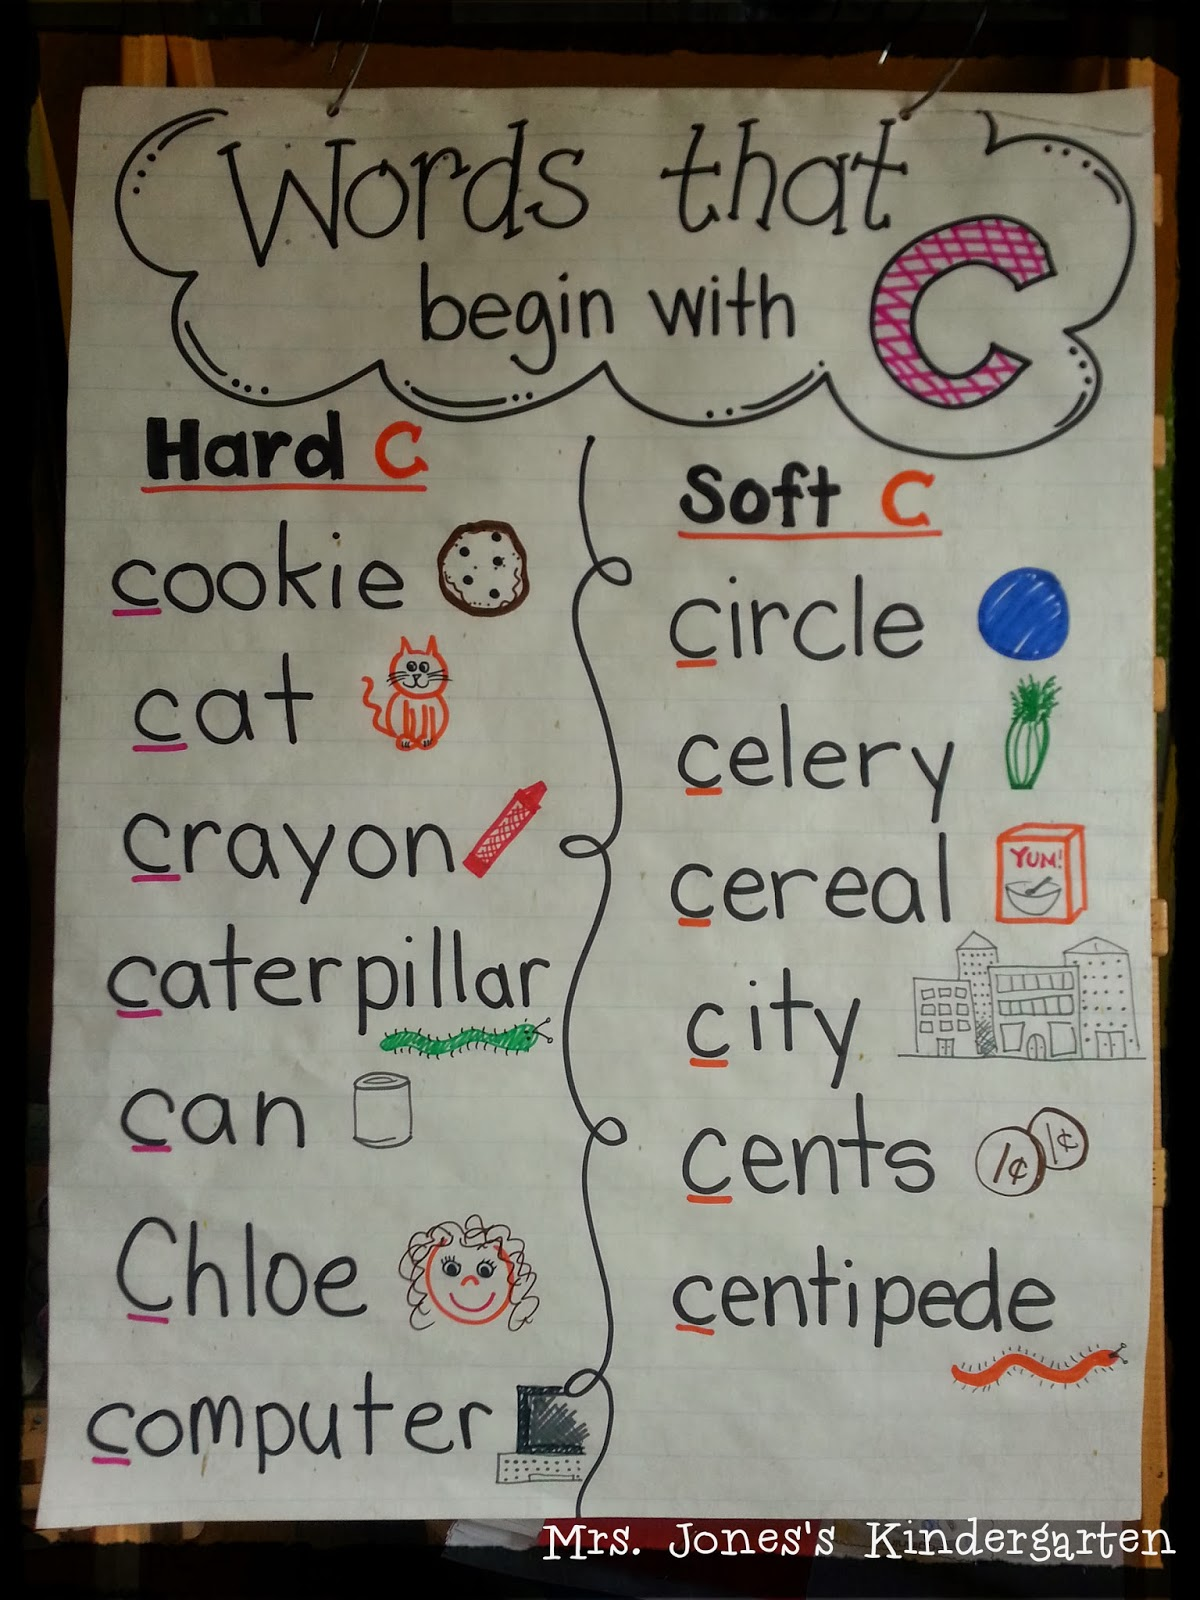 Image Width   Height   Version in addition Beginning Word Sound Op Words Worksheet likewise Soundsofied together with Ee Words Worksheets further Bp Blogspot   D Eipqc Vgm Utyferu Mi Aaaaaaaadfu Ywughwj Gs Easy Ideas Math Literacy And Lessons Phonics Worksheets For Kindergarten About Missing Alphabet Review Beginning X. on beginning and ending sounds worksheet